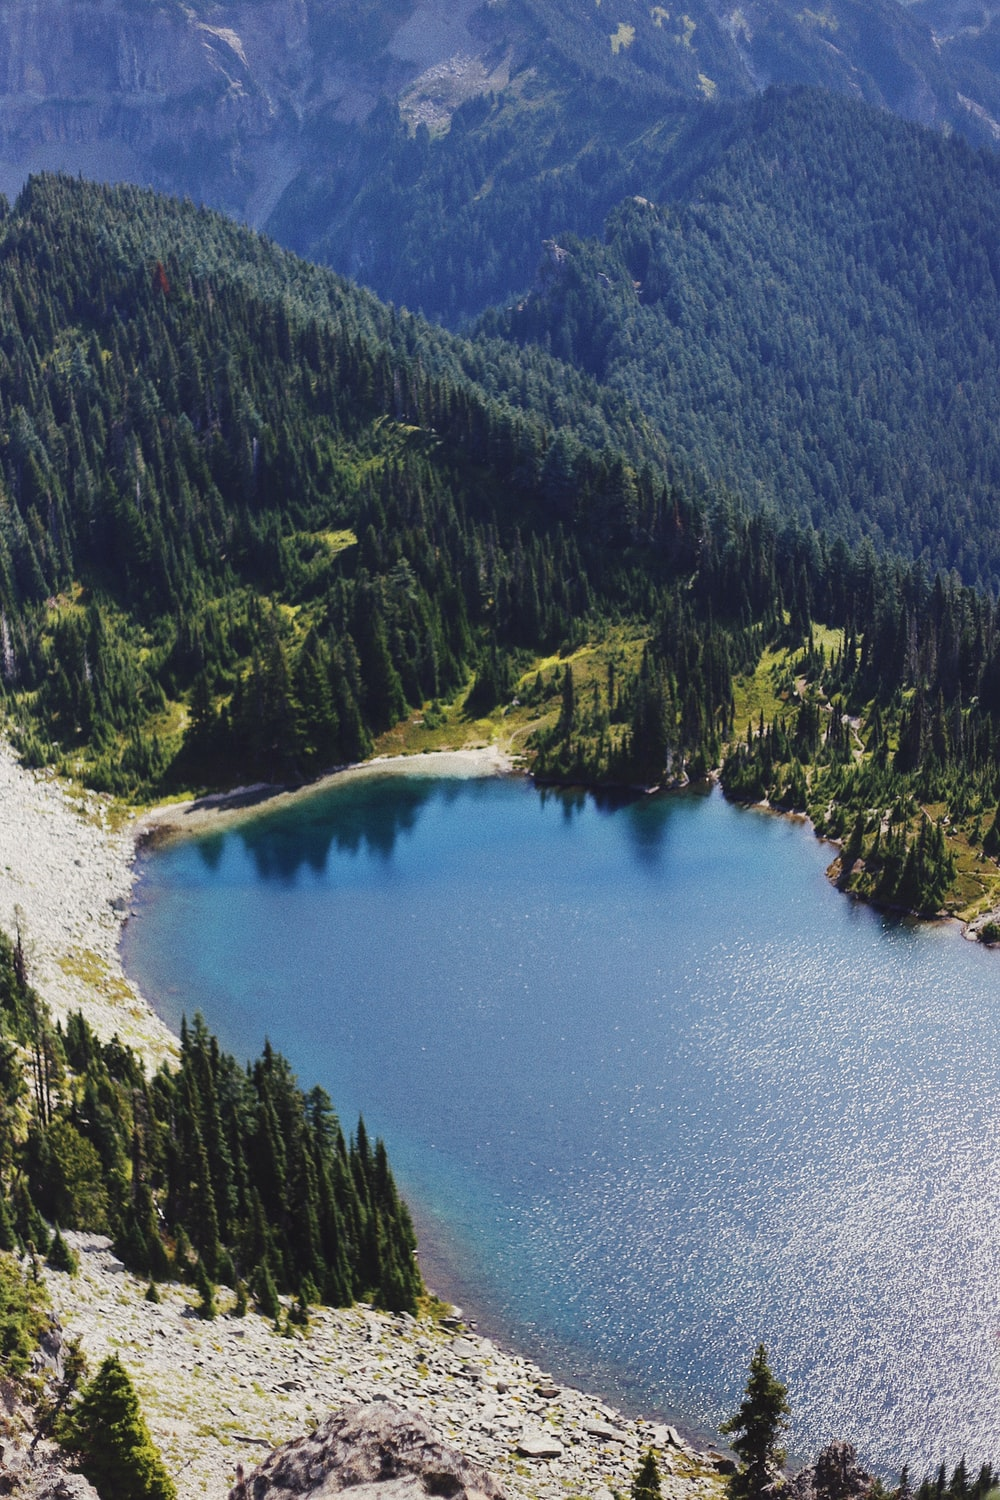 aerial view of pine trees beside body of water during daytime